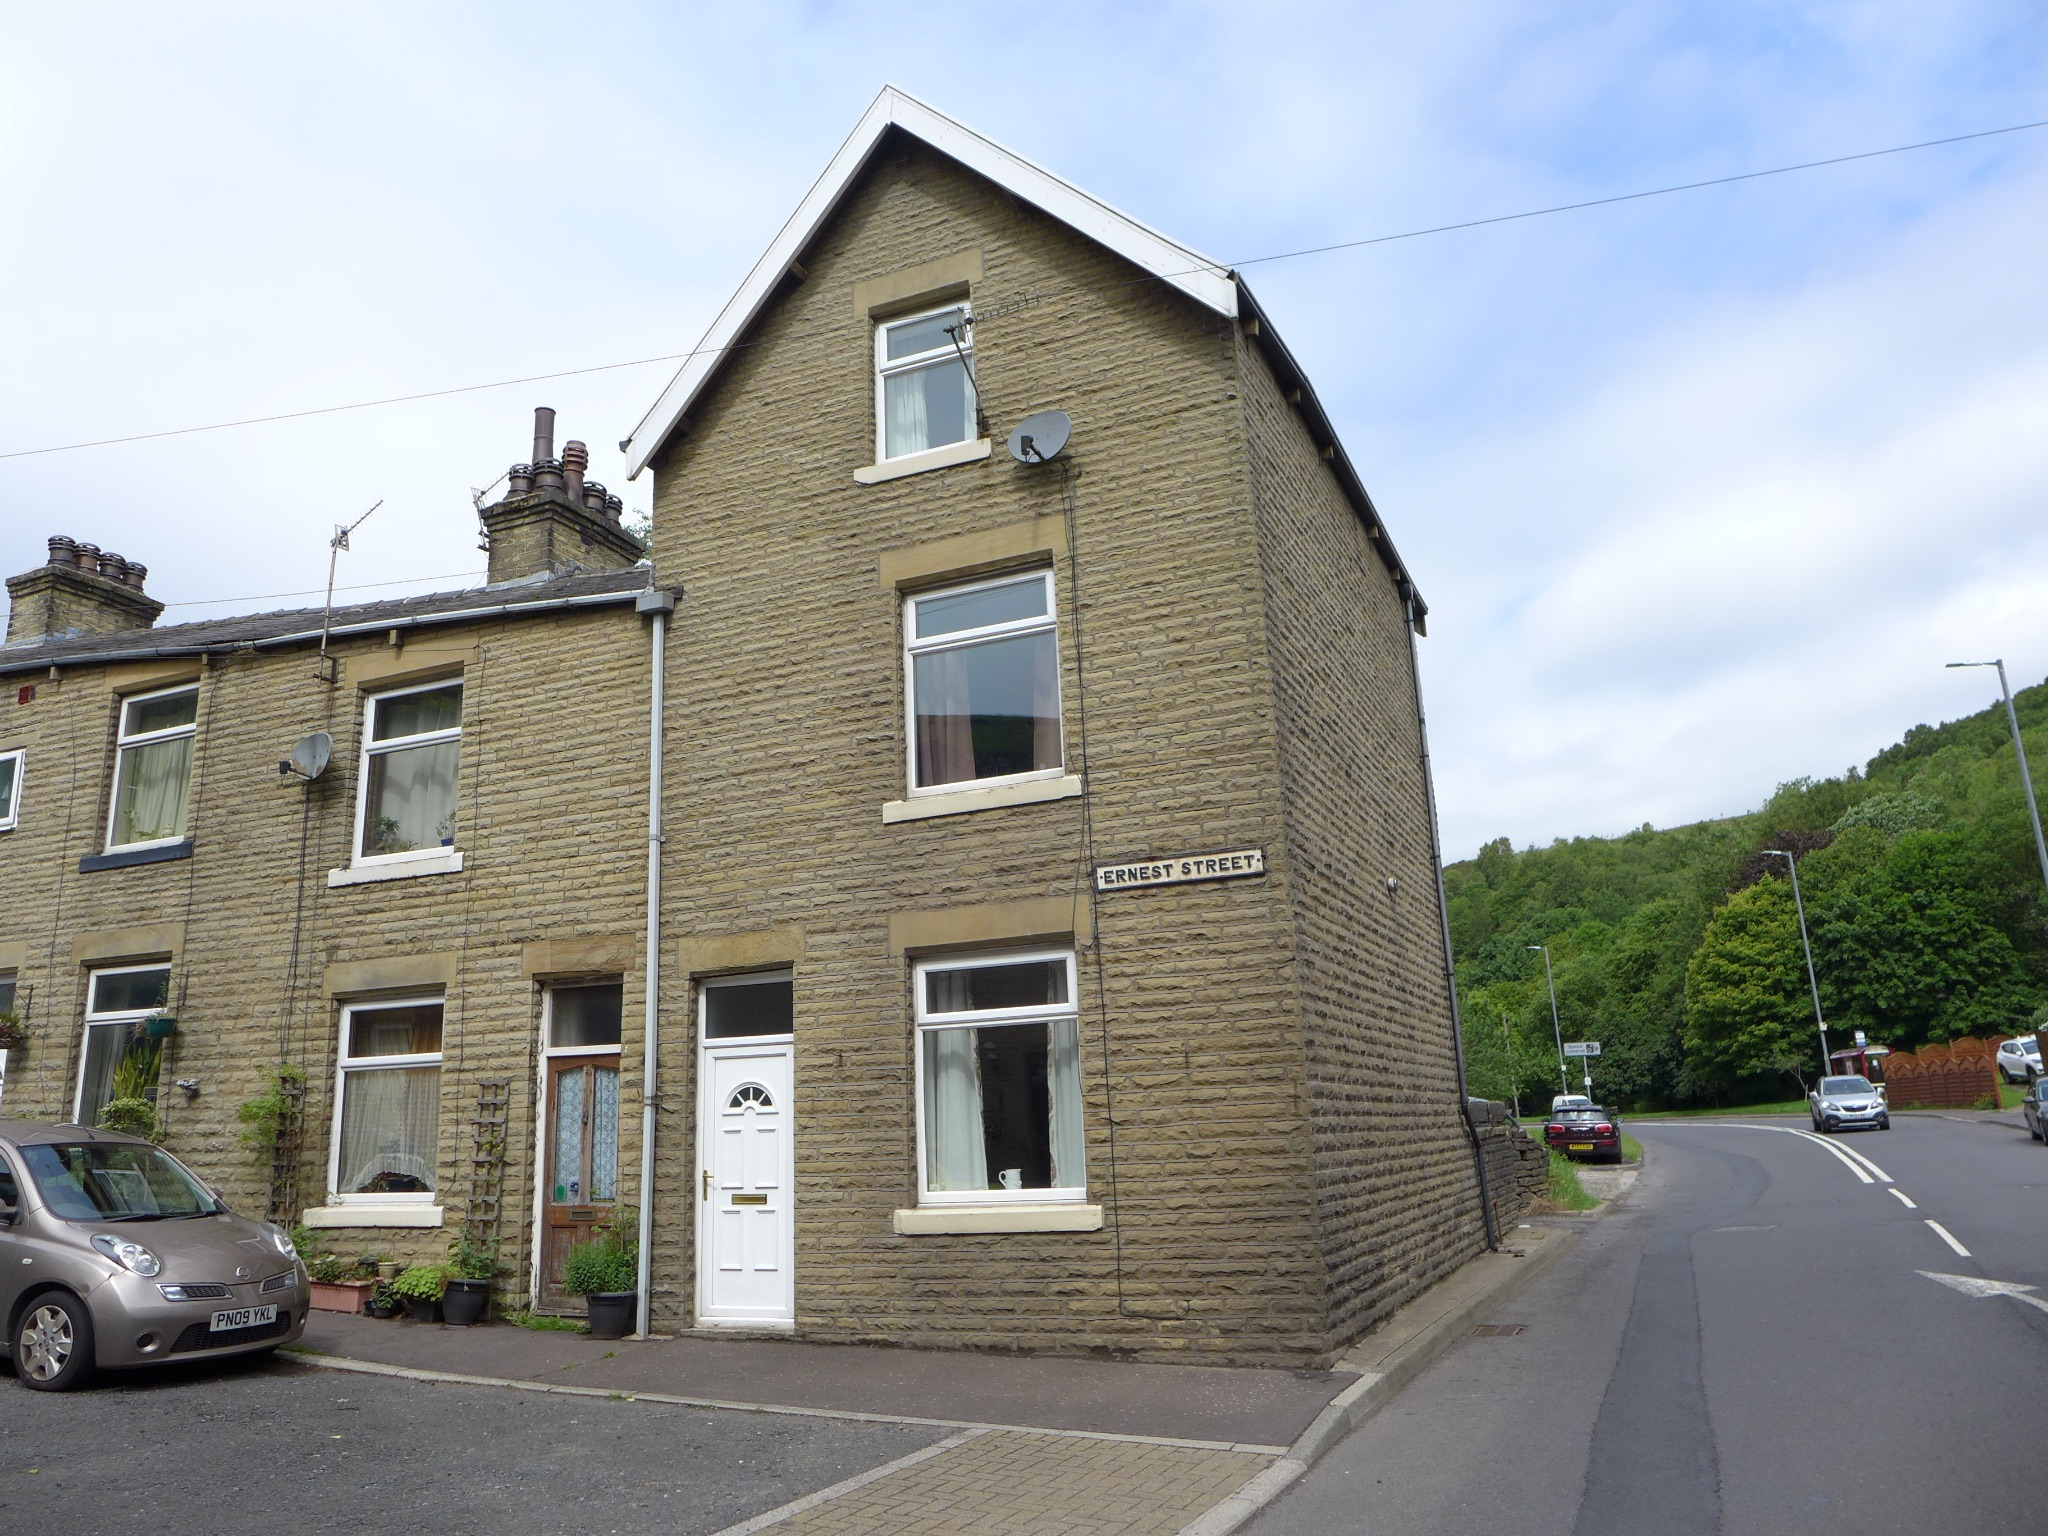 3 bedroom end terraced house For Sale in Todmorden - Photograph 1.